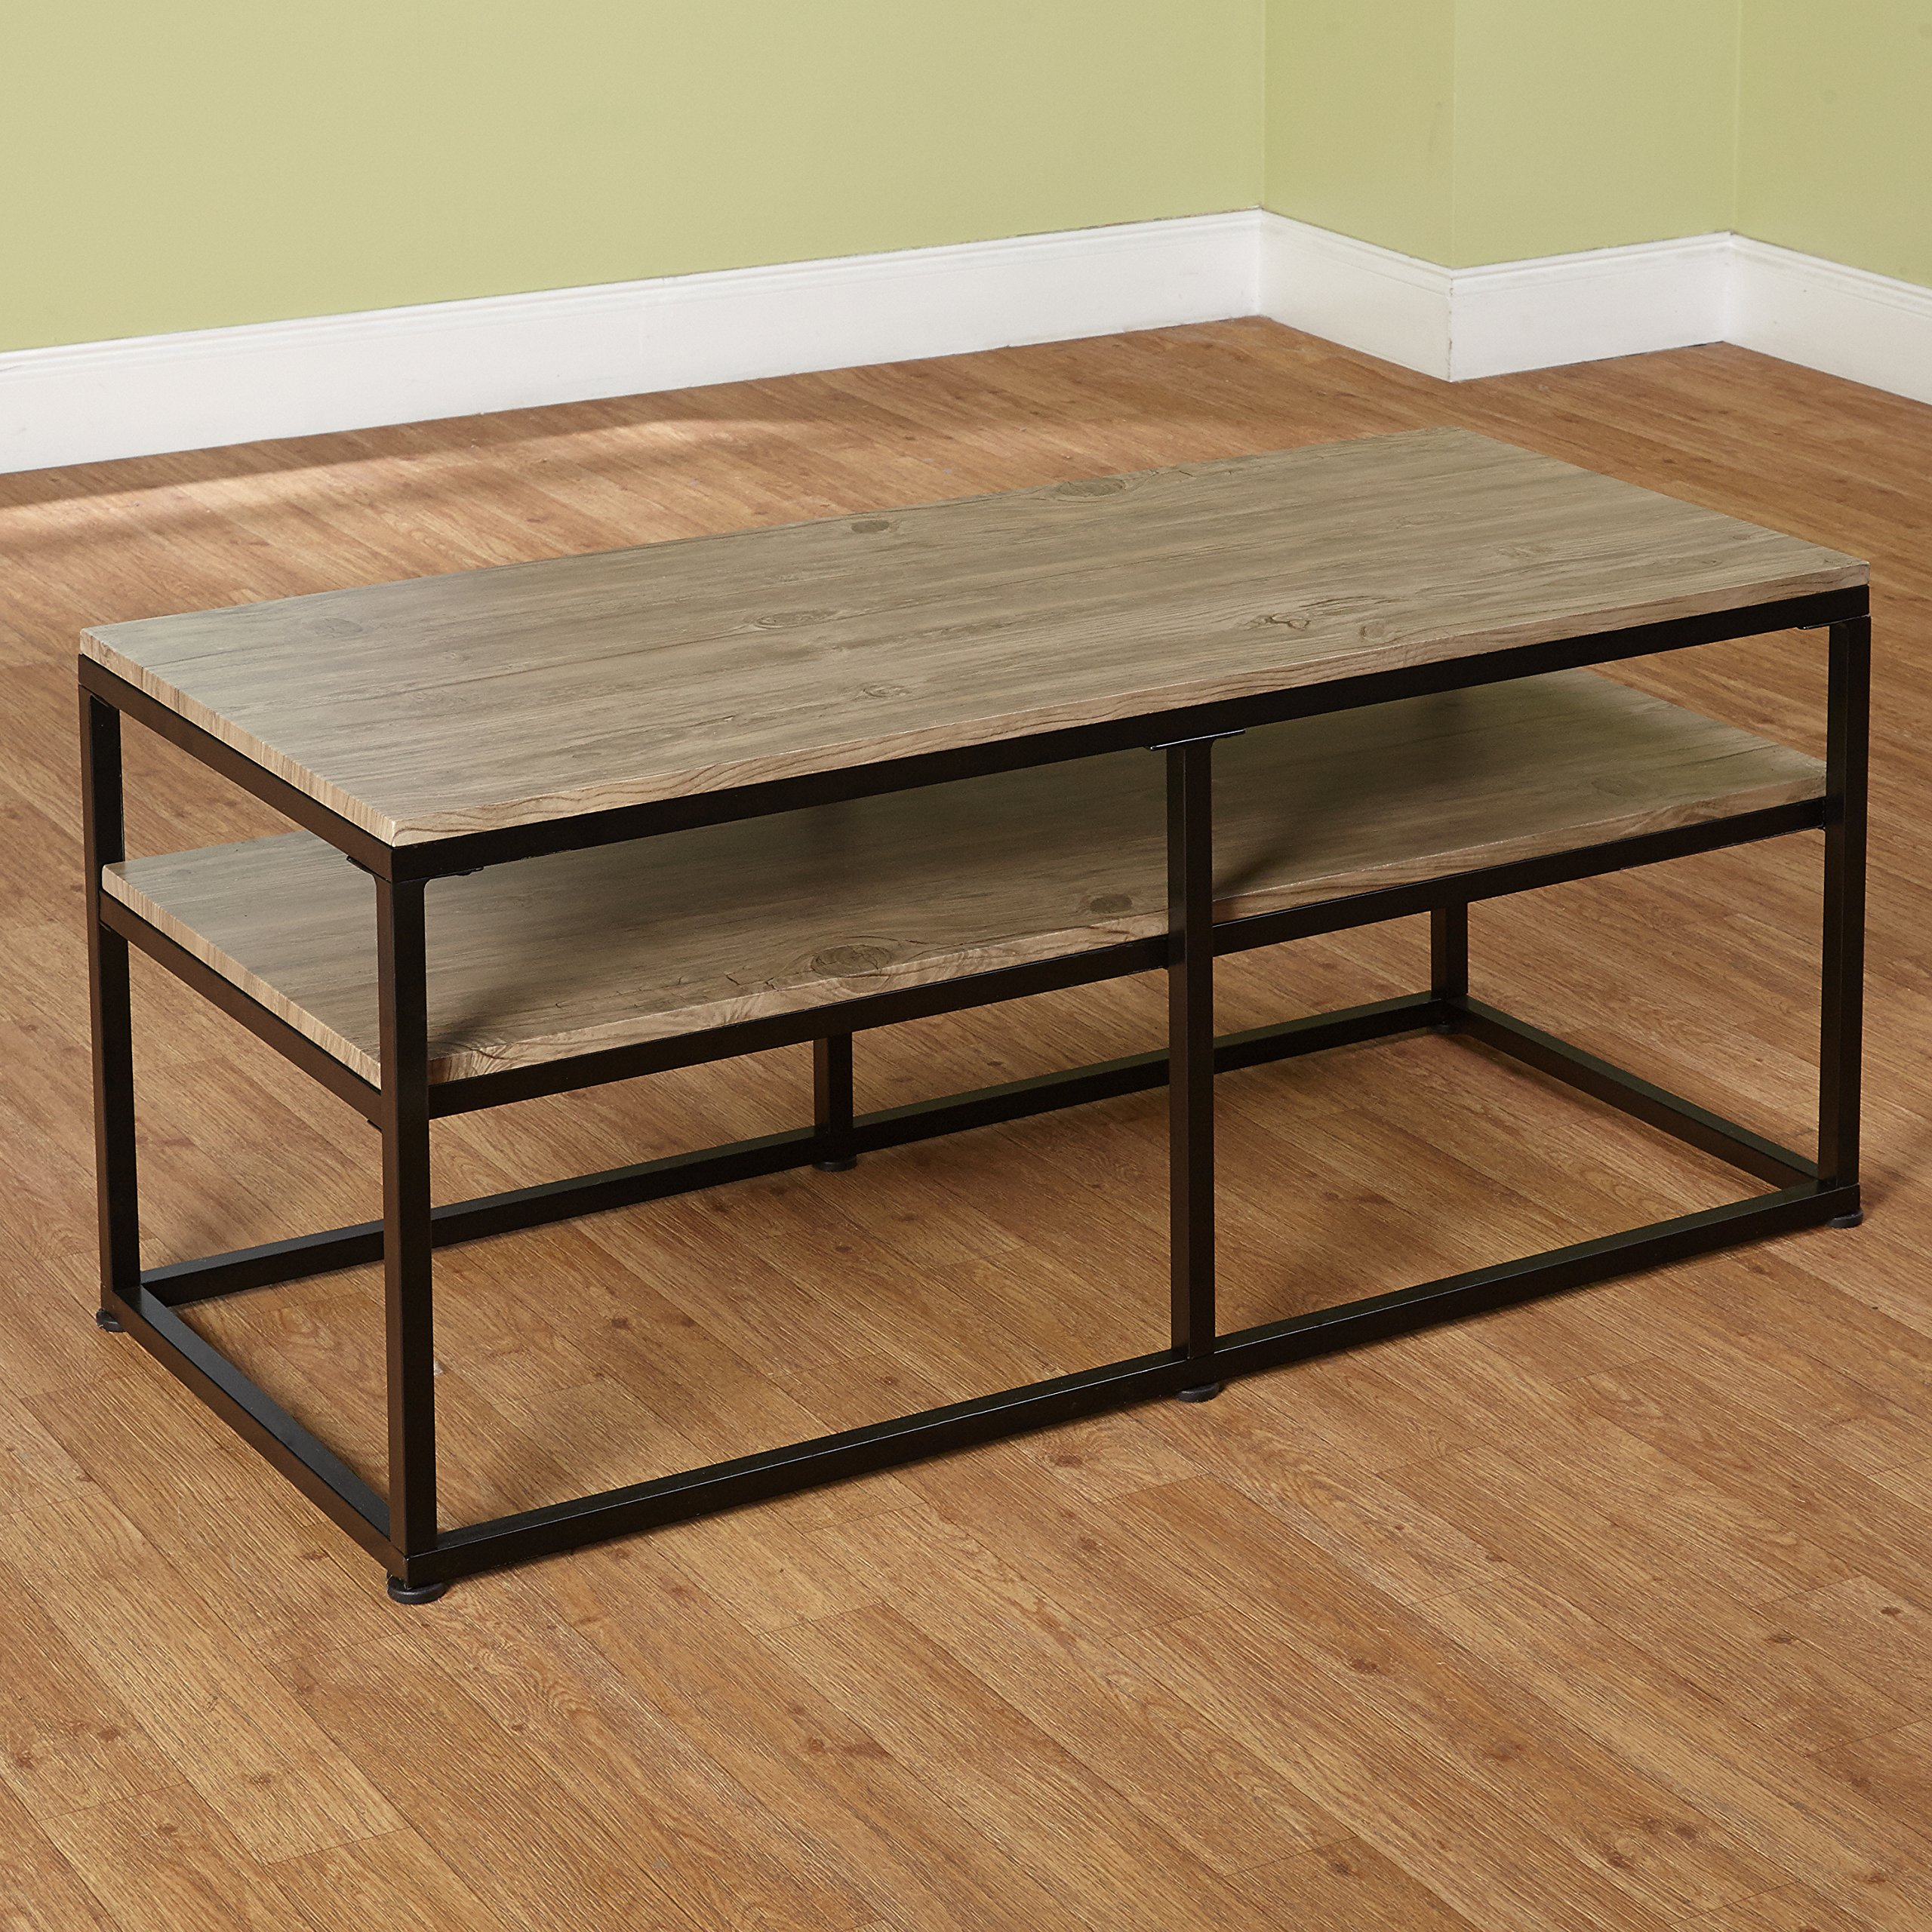 Target Marketing Systems Piazza Collection Modern Reclaimed Sleek Coffee Table, With Open Shelves, Wood/Metal by Target Marketing Systems